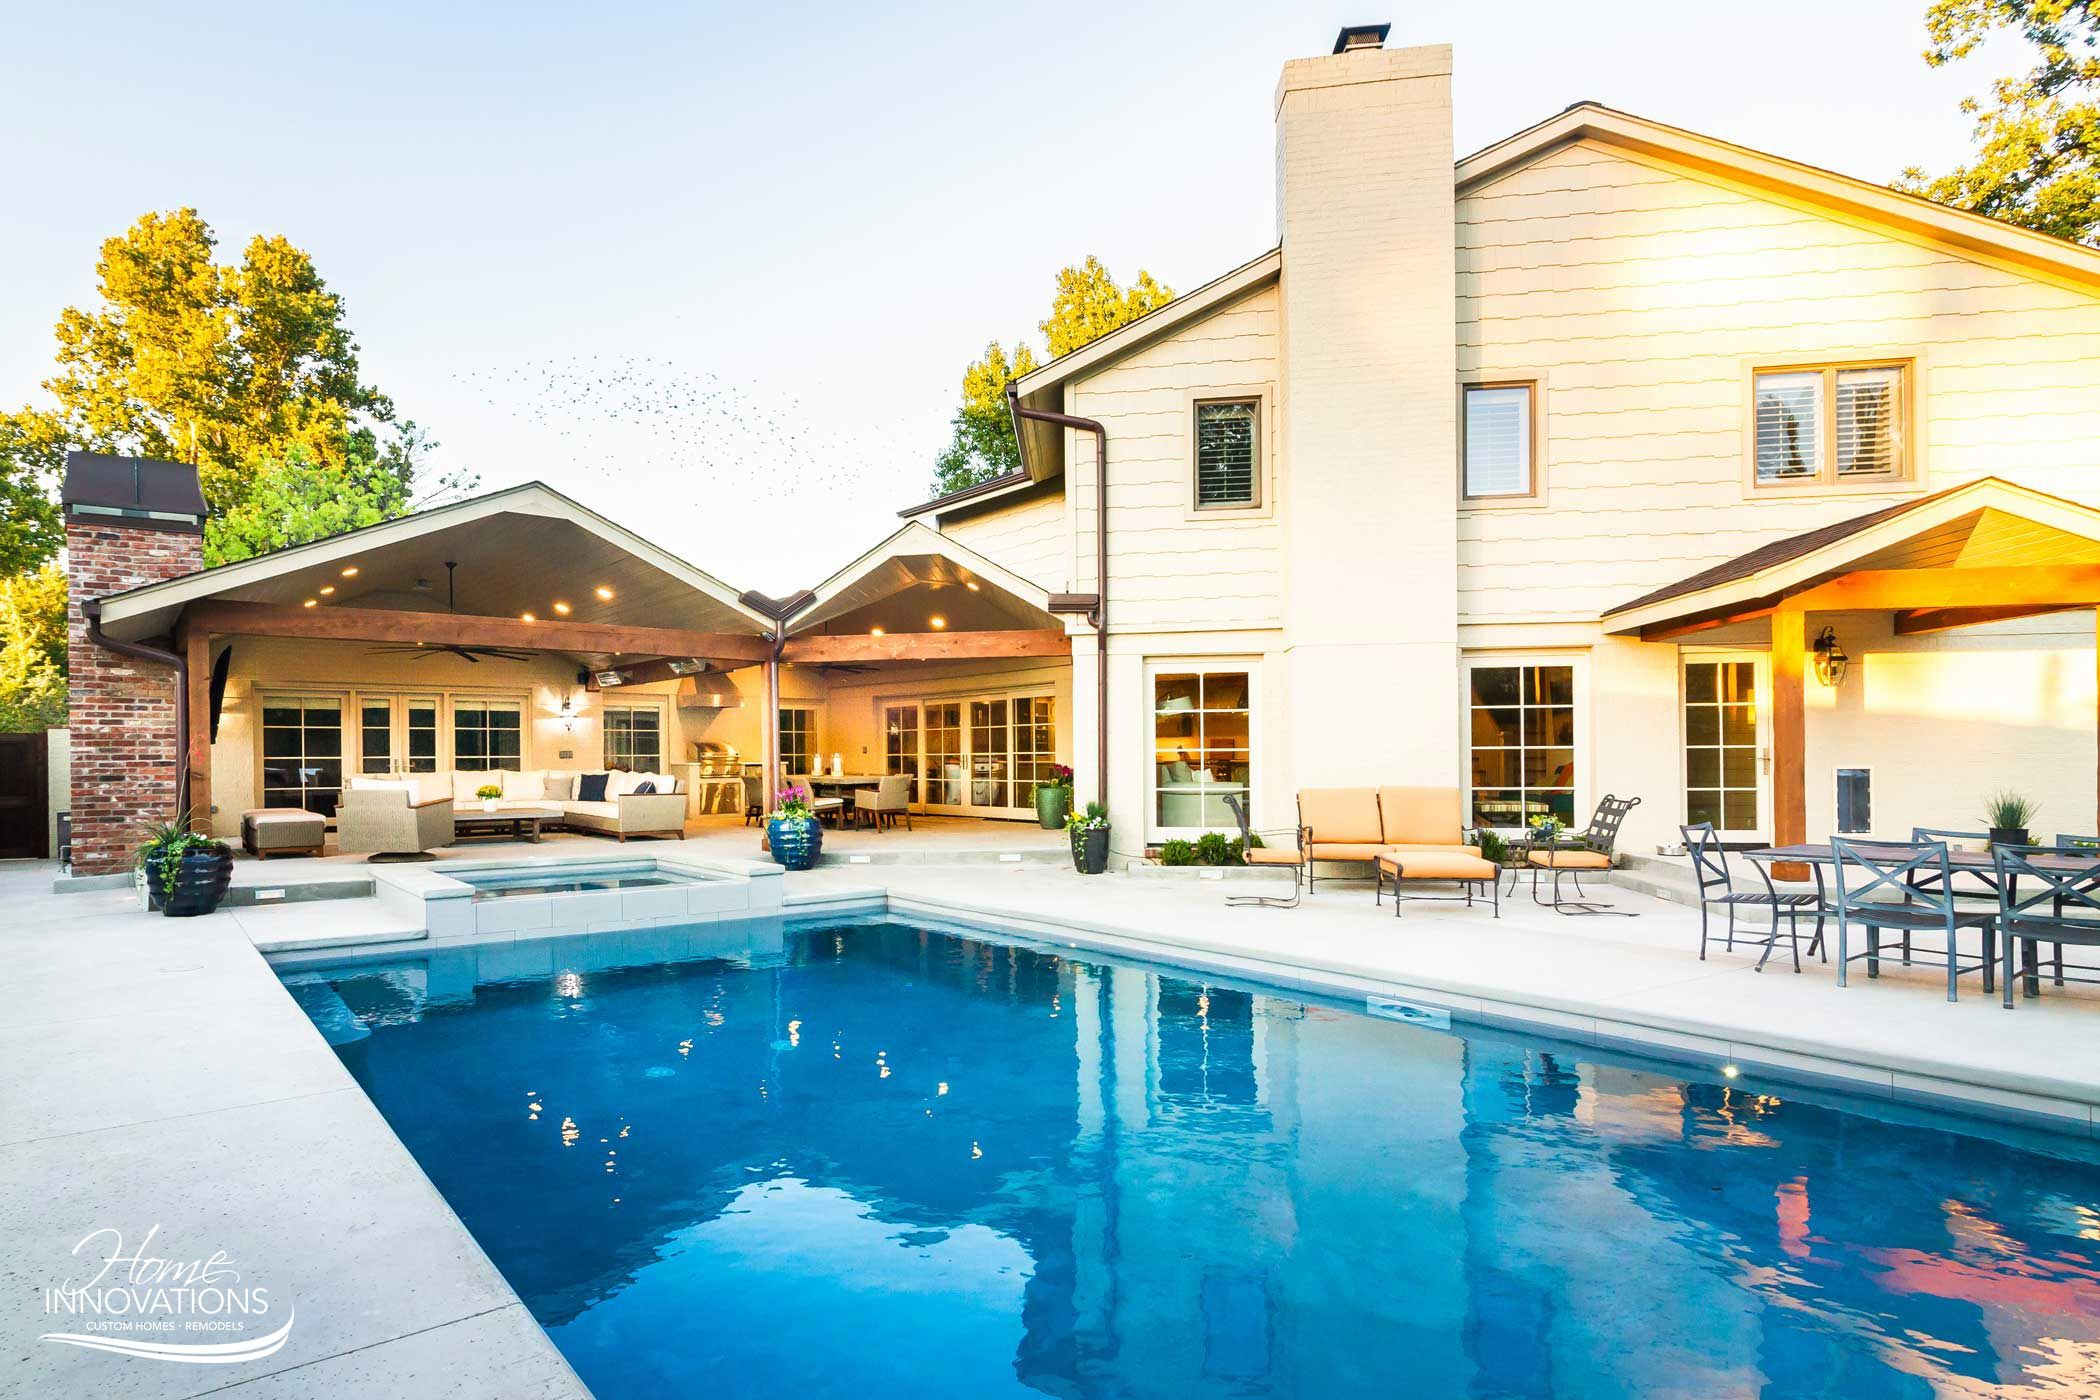 Outdoor Remodel Tulsa Oklahoma Swimming Pool Hot Tub Outdoor Kitchen Living Area With Fireplace Outdoor Remodel Outdoor Glider Outdoor Living